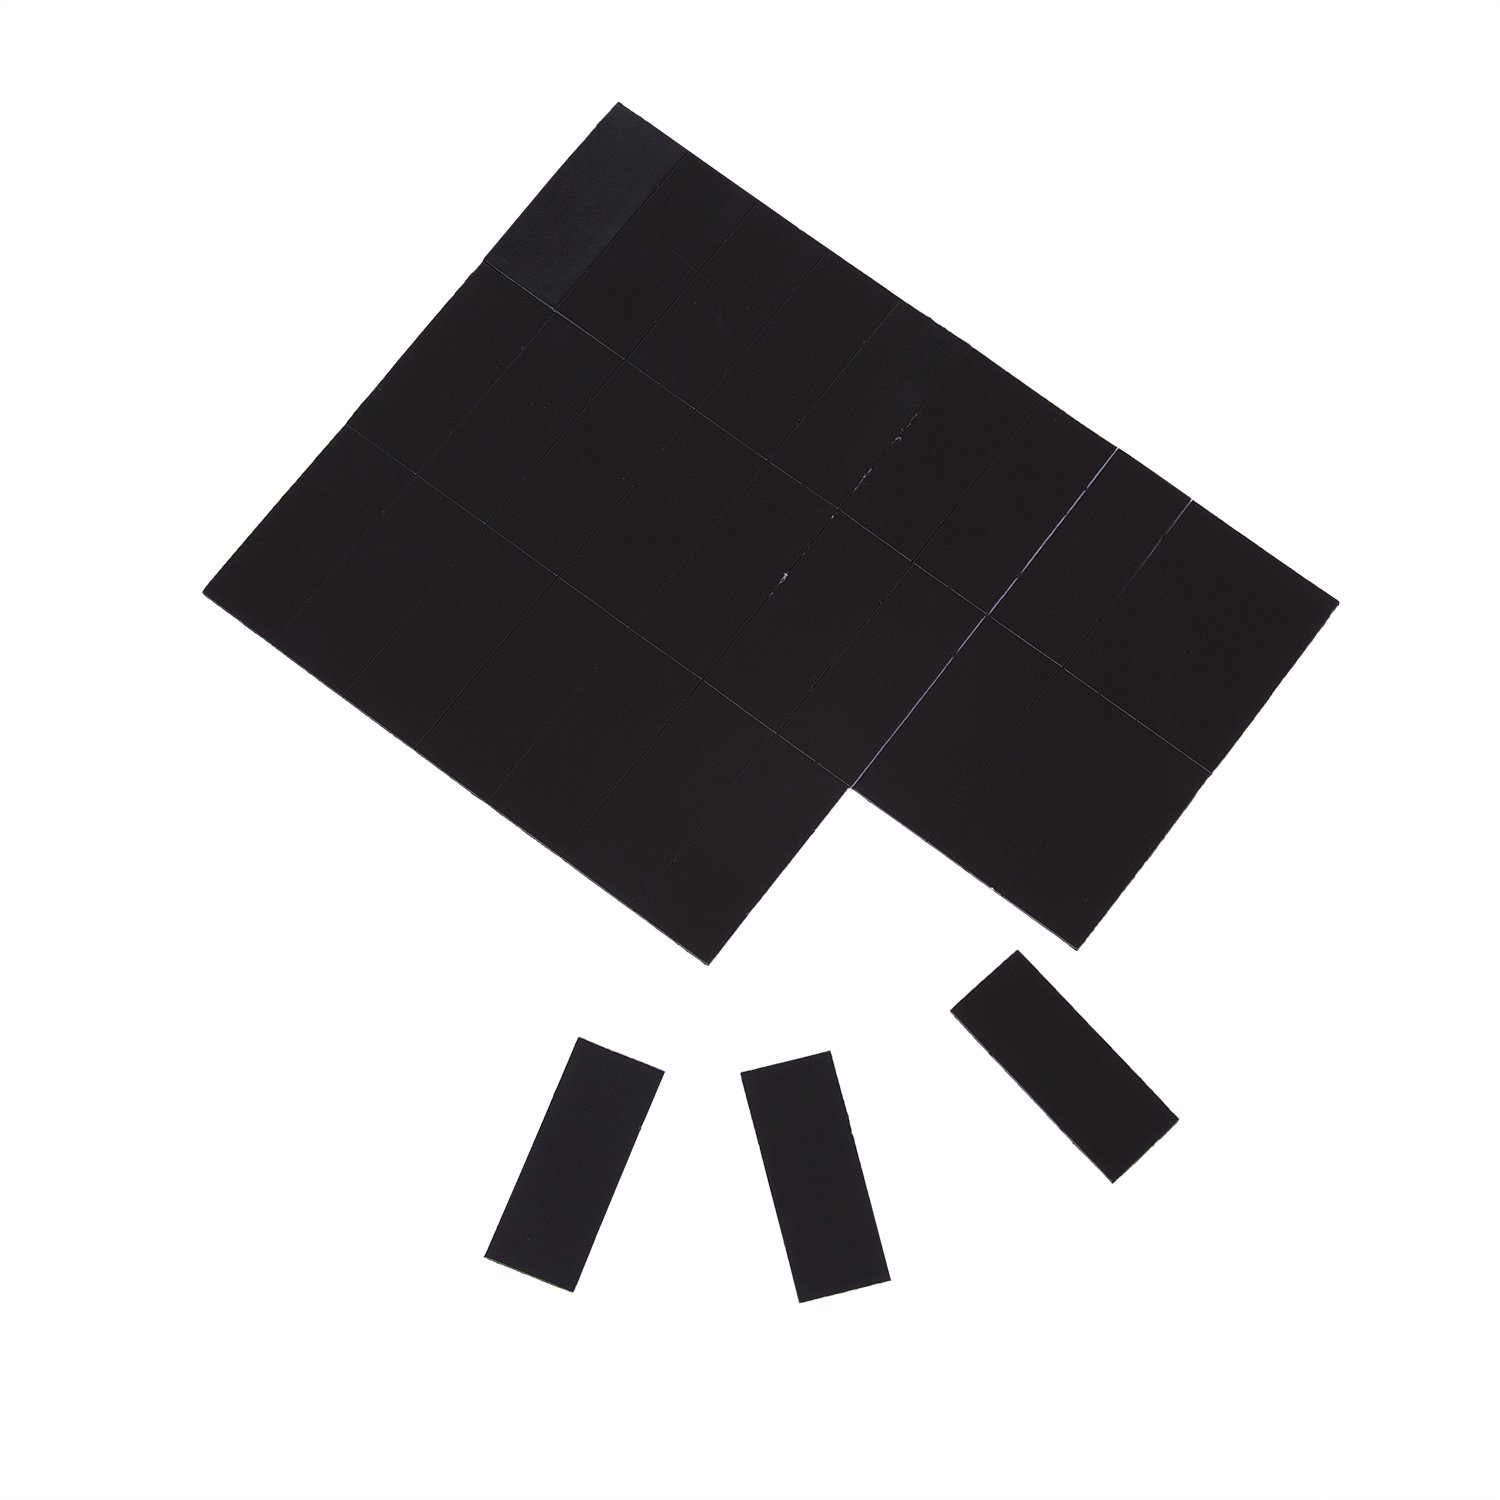 Sadzero Flexible Magnet Rectangle 5cmx2cm(1.96''x0.78''),30 PCS of Each Paper, Thickness 1mm Adhesive Agnete with Extra Strong Adhesive Force-Black for Use in Refrigerator Door Seals,Etc.